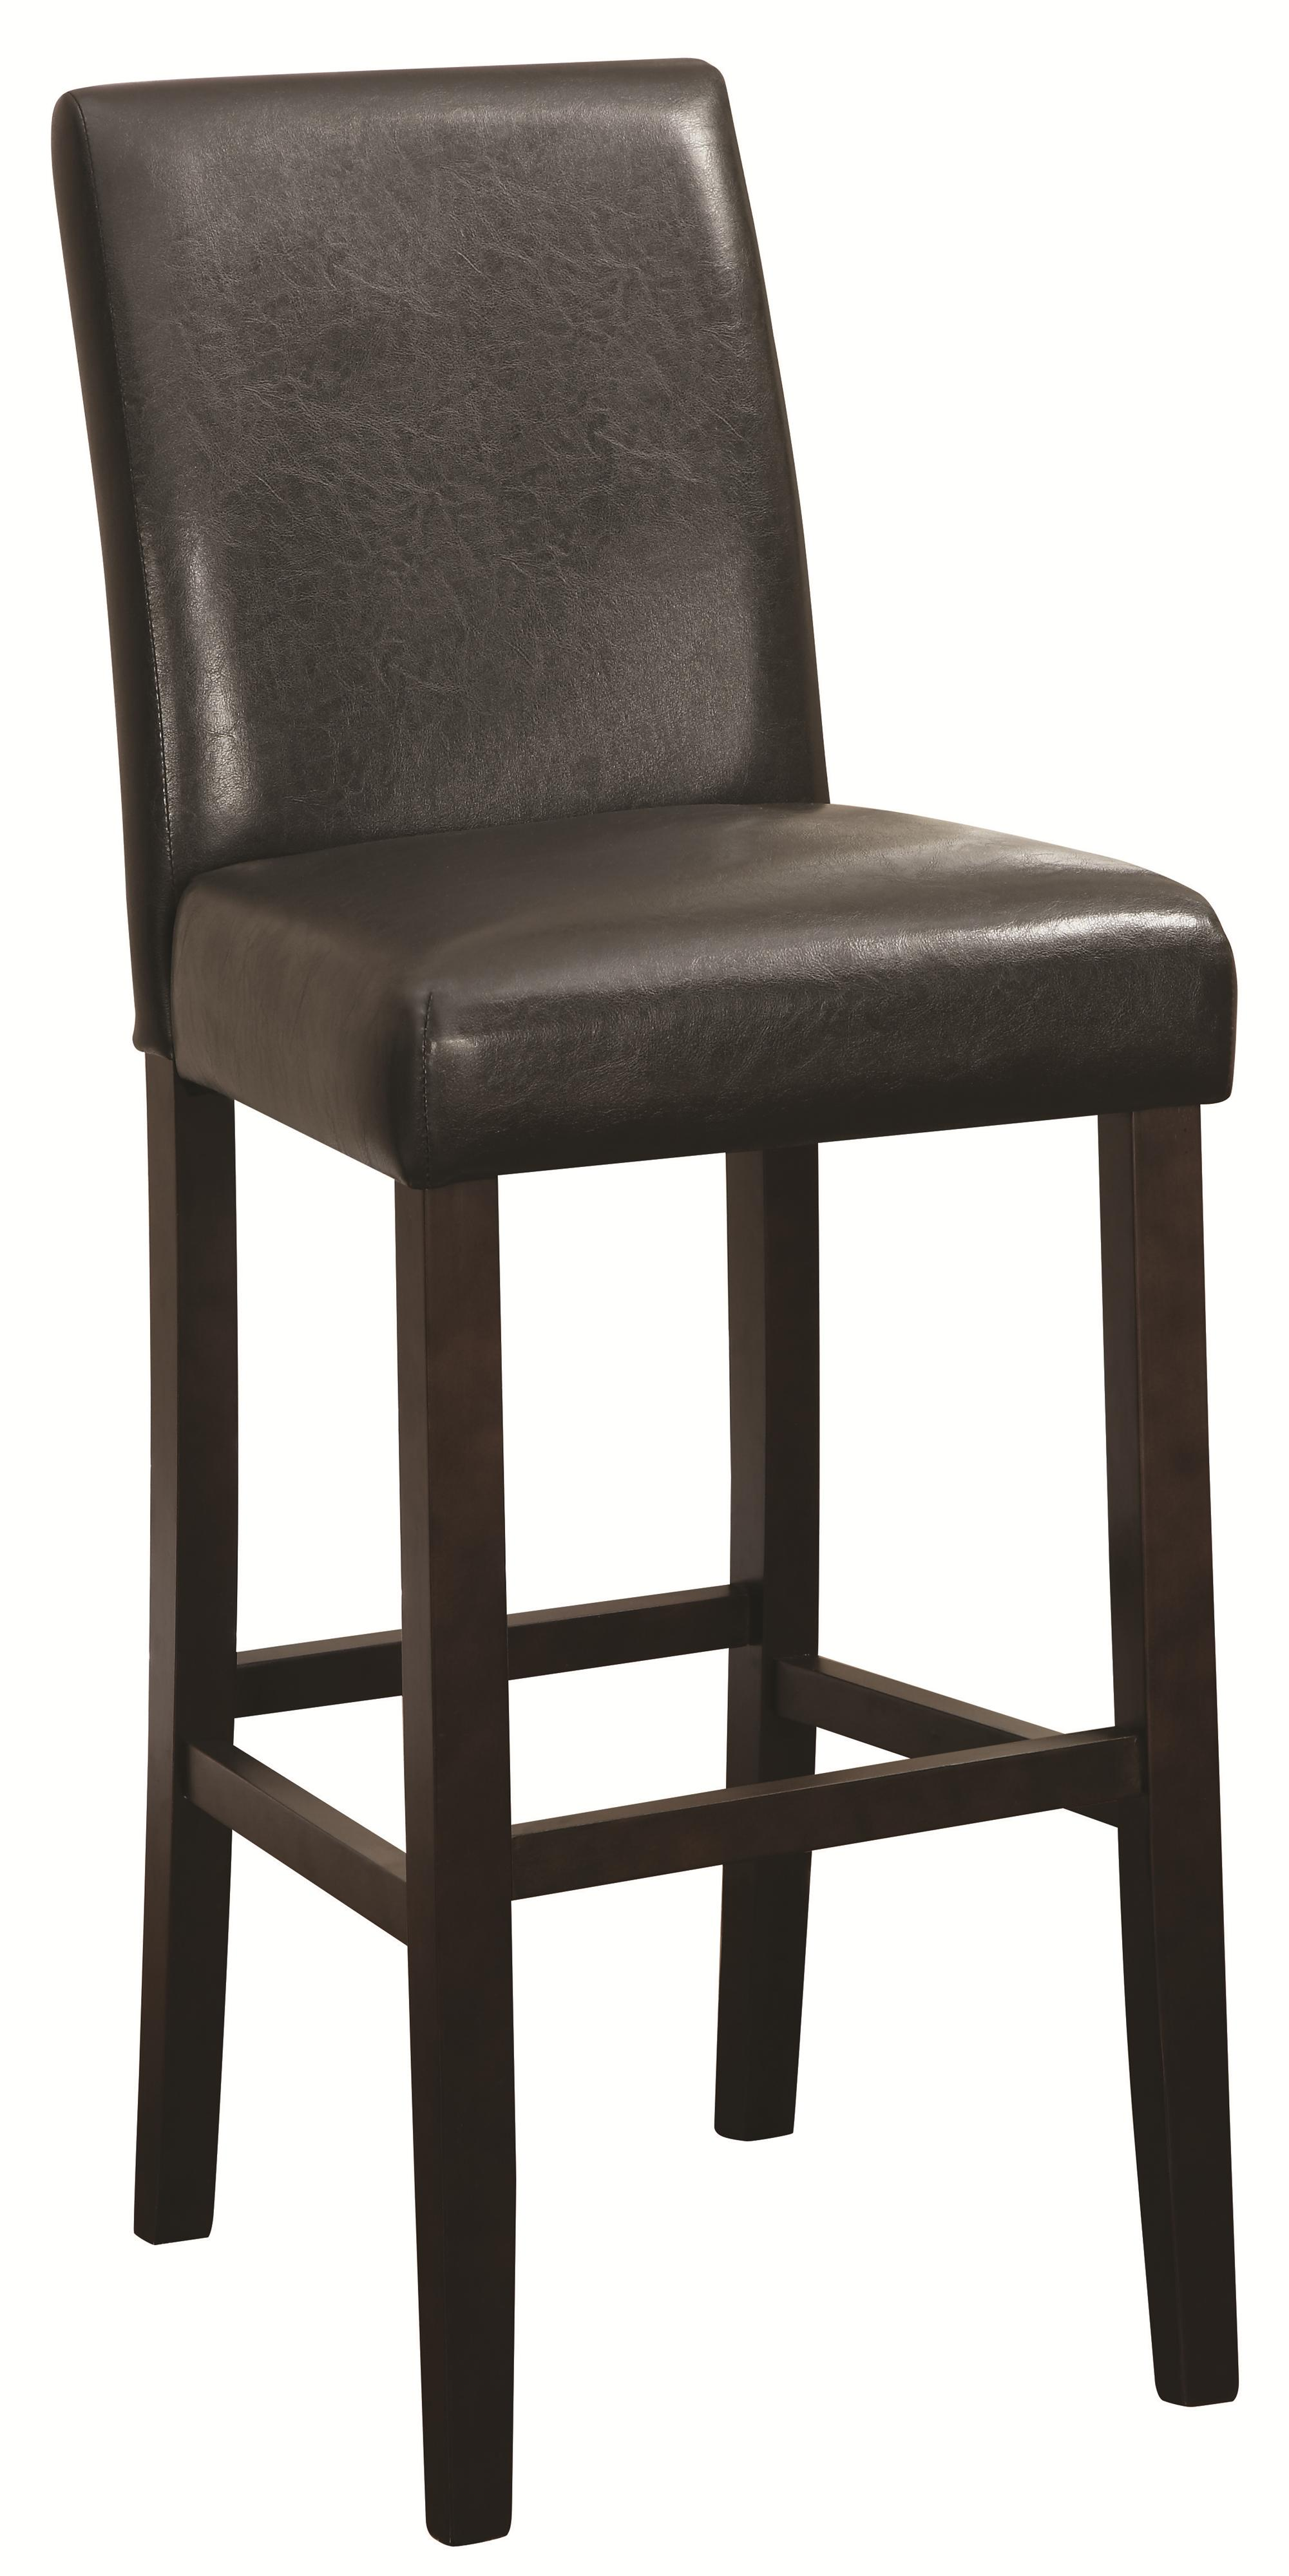 "Coaster Dining Chairs and Bar Stools 29"" Bar Stool - Item Number: 130060"